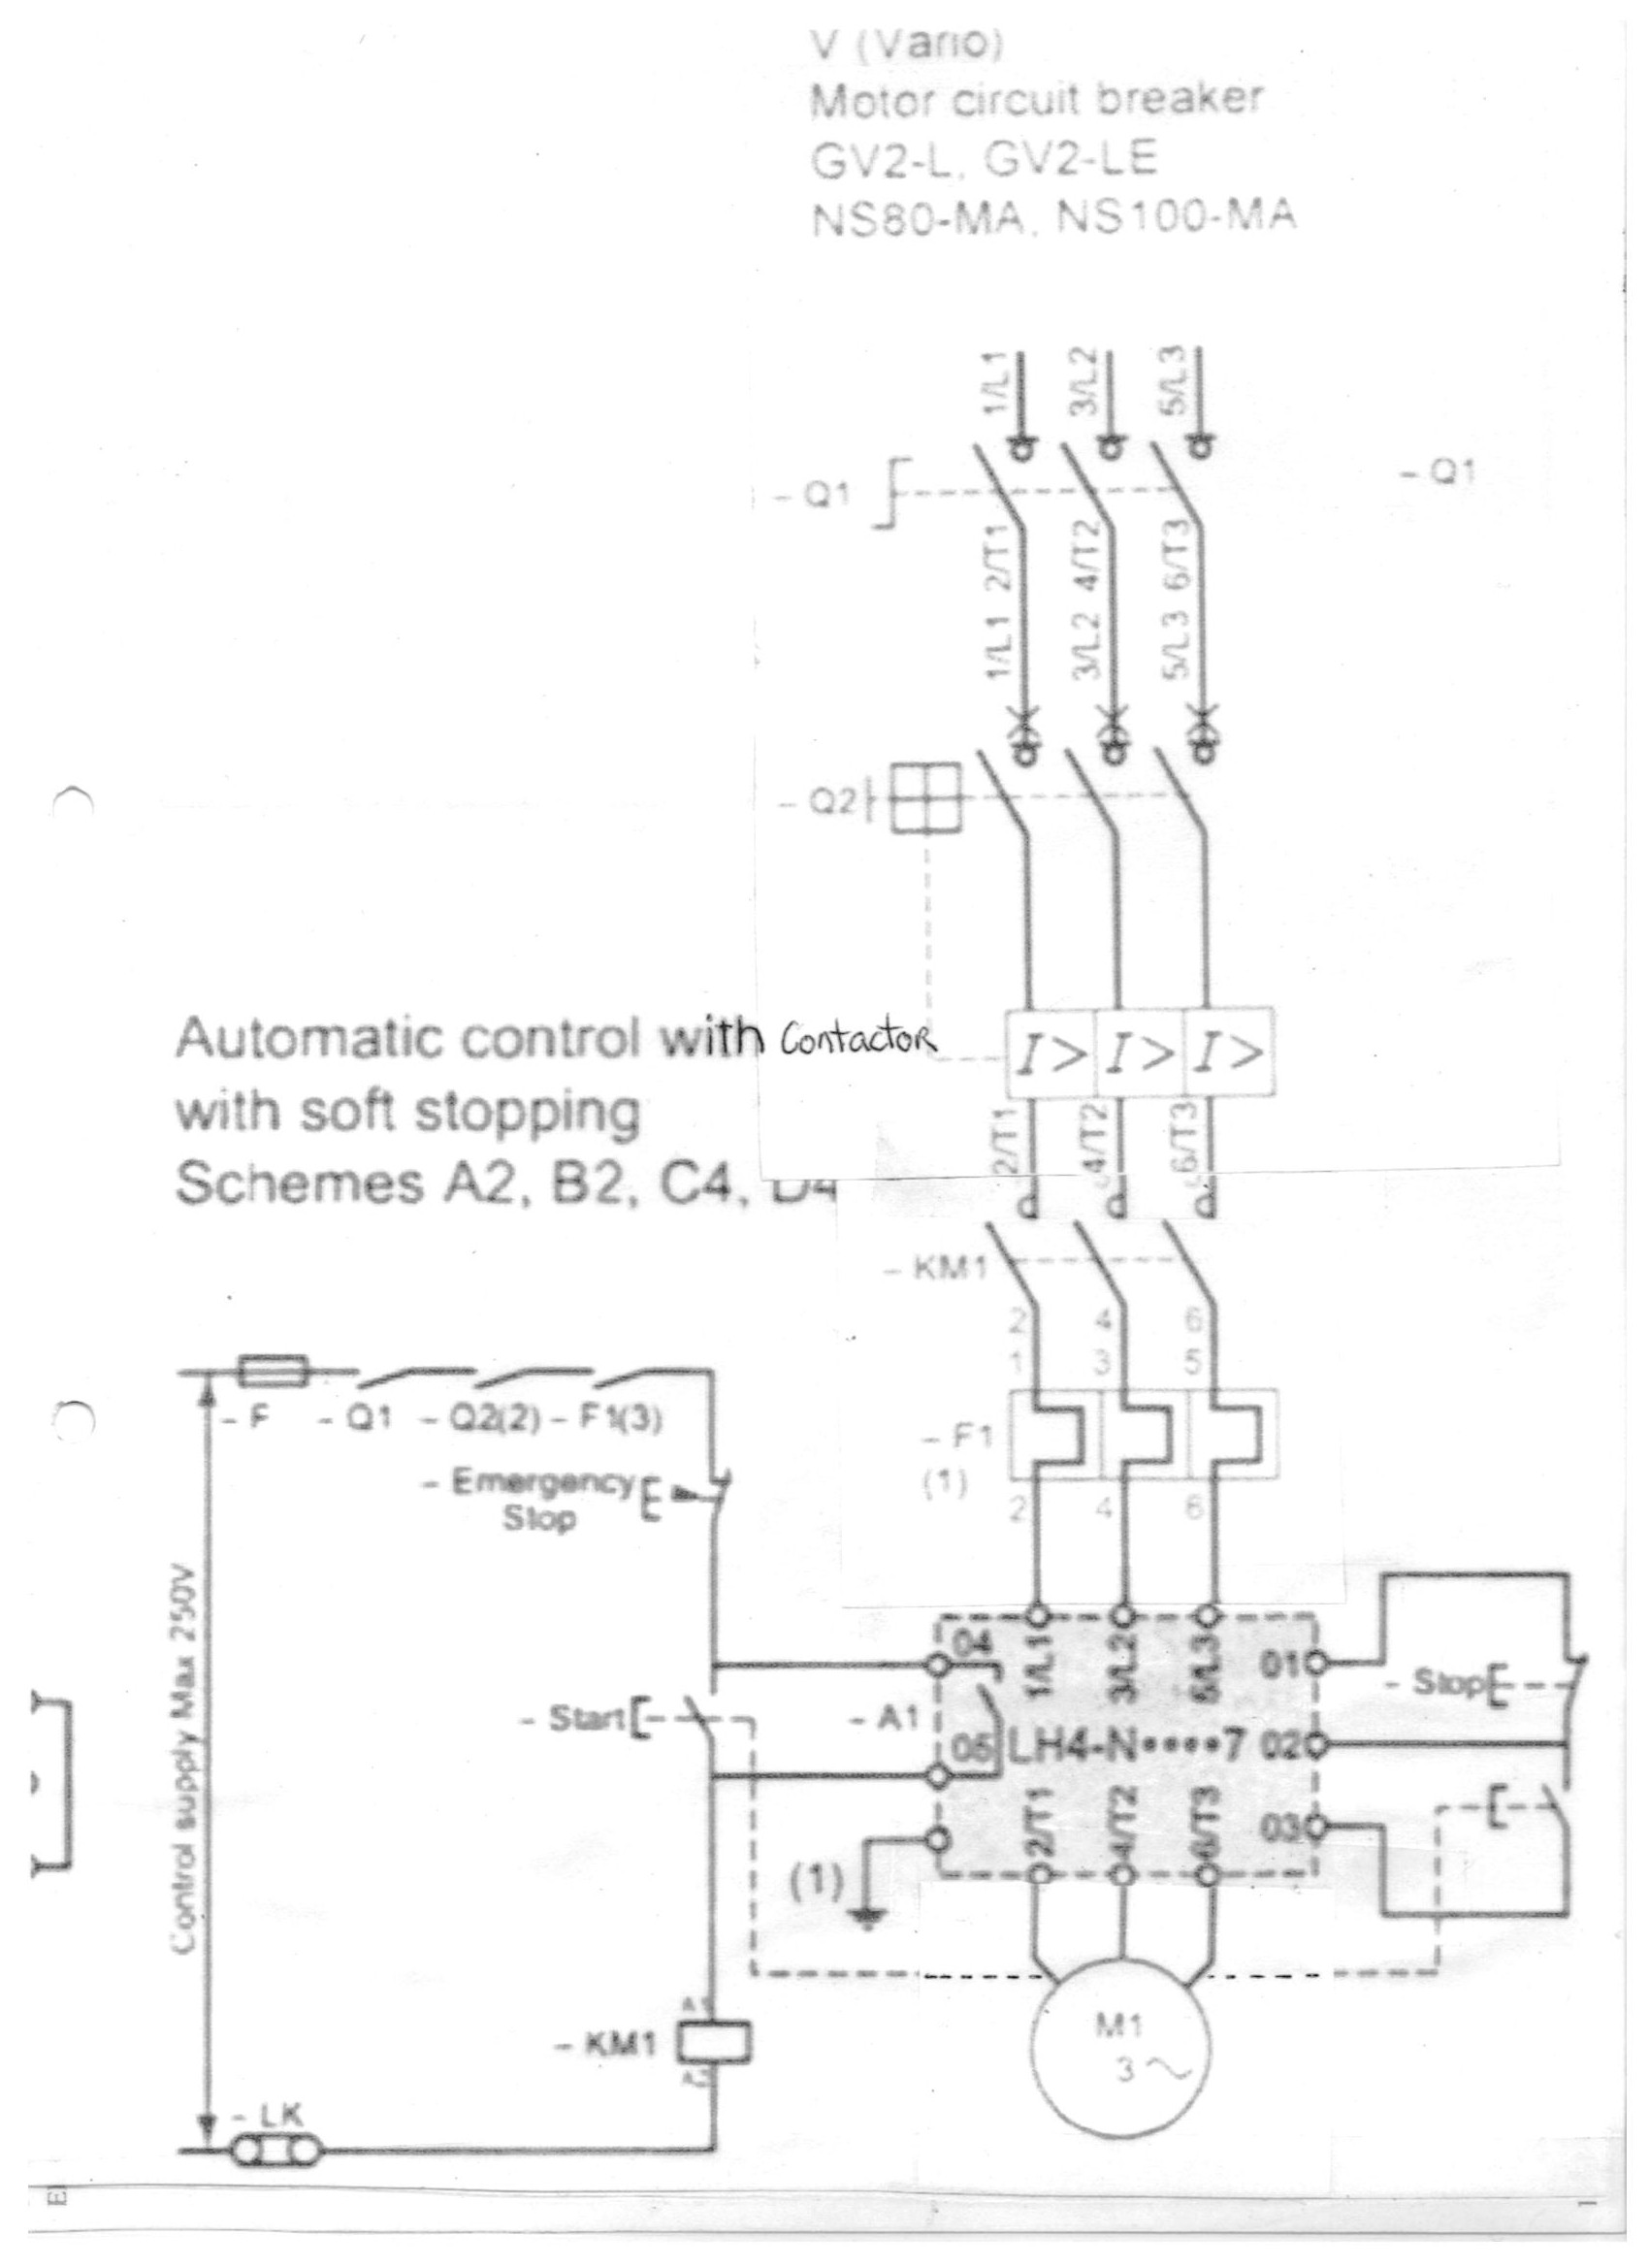 siemens hand off auto switch wiring diagram apple airport motor starter symbol impremedia